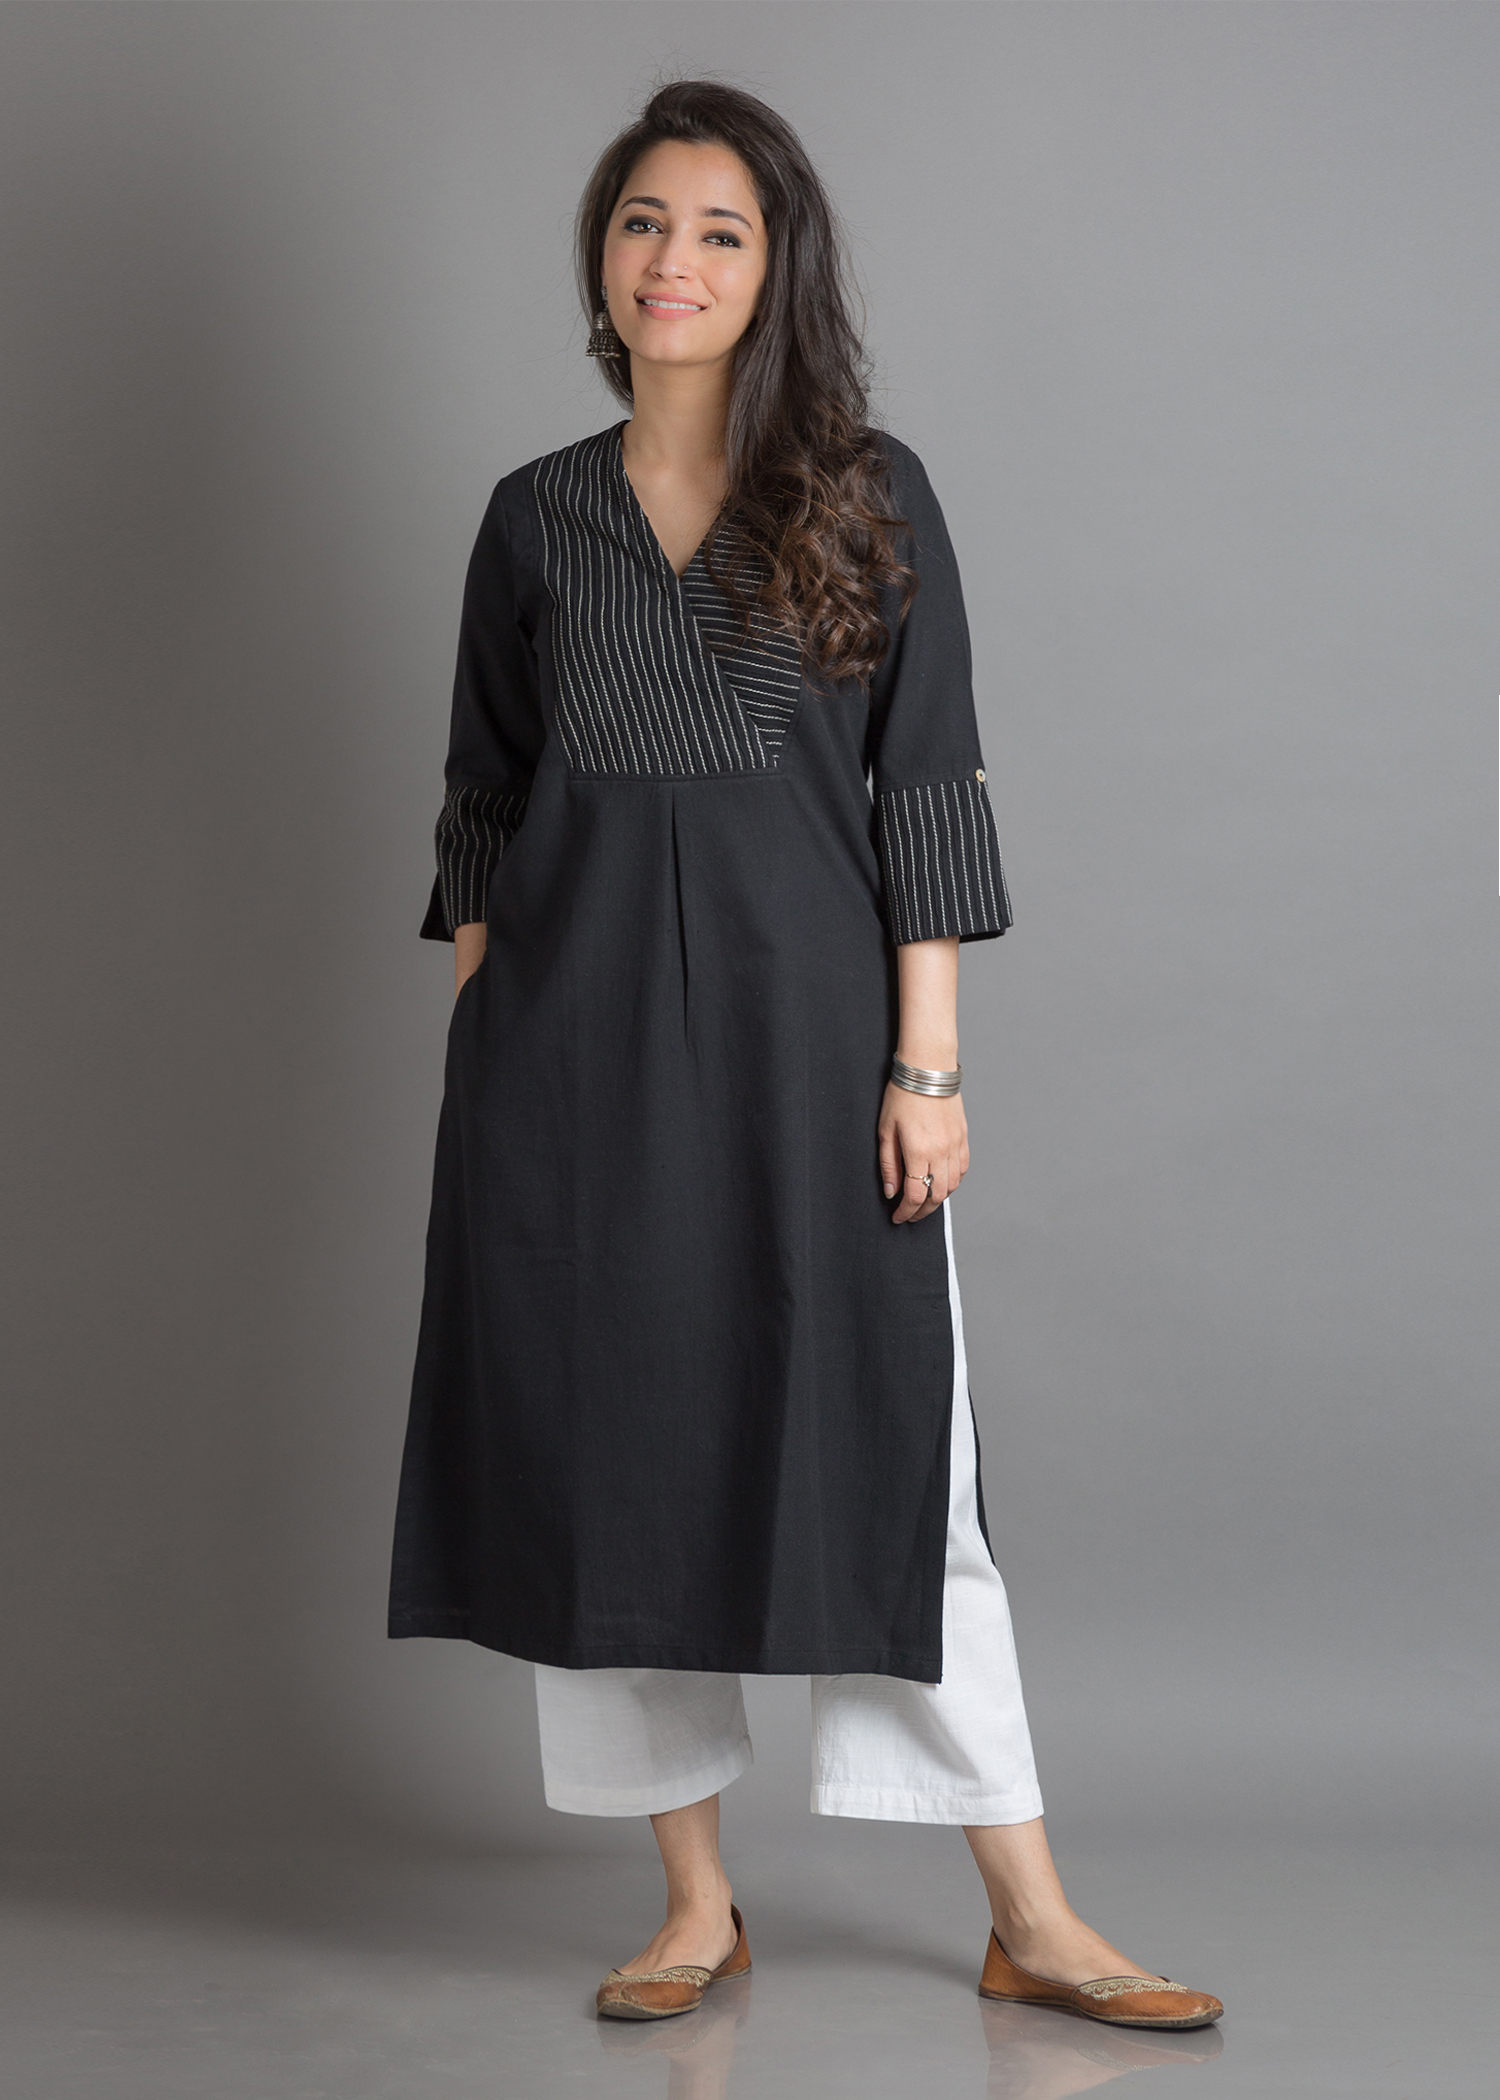 Black Pintuck & Tagai Handwoven Cotton Kurta